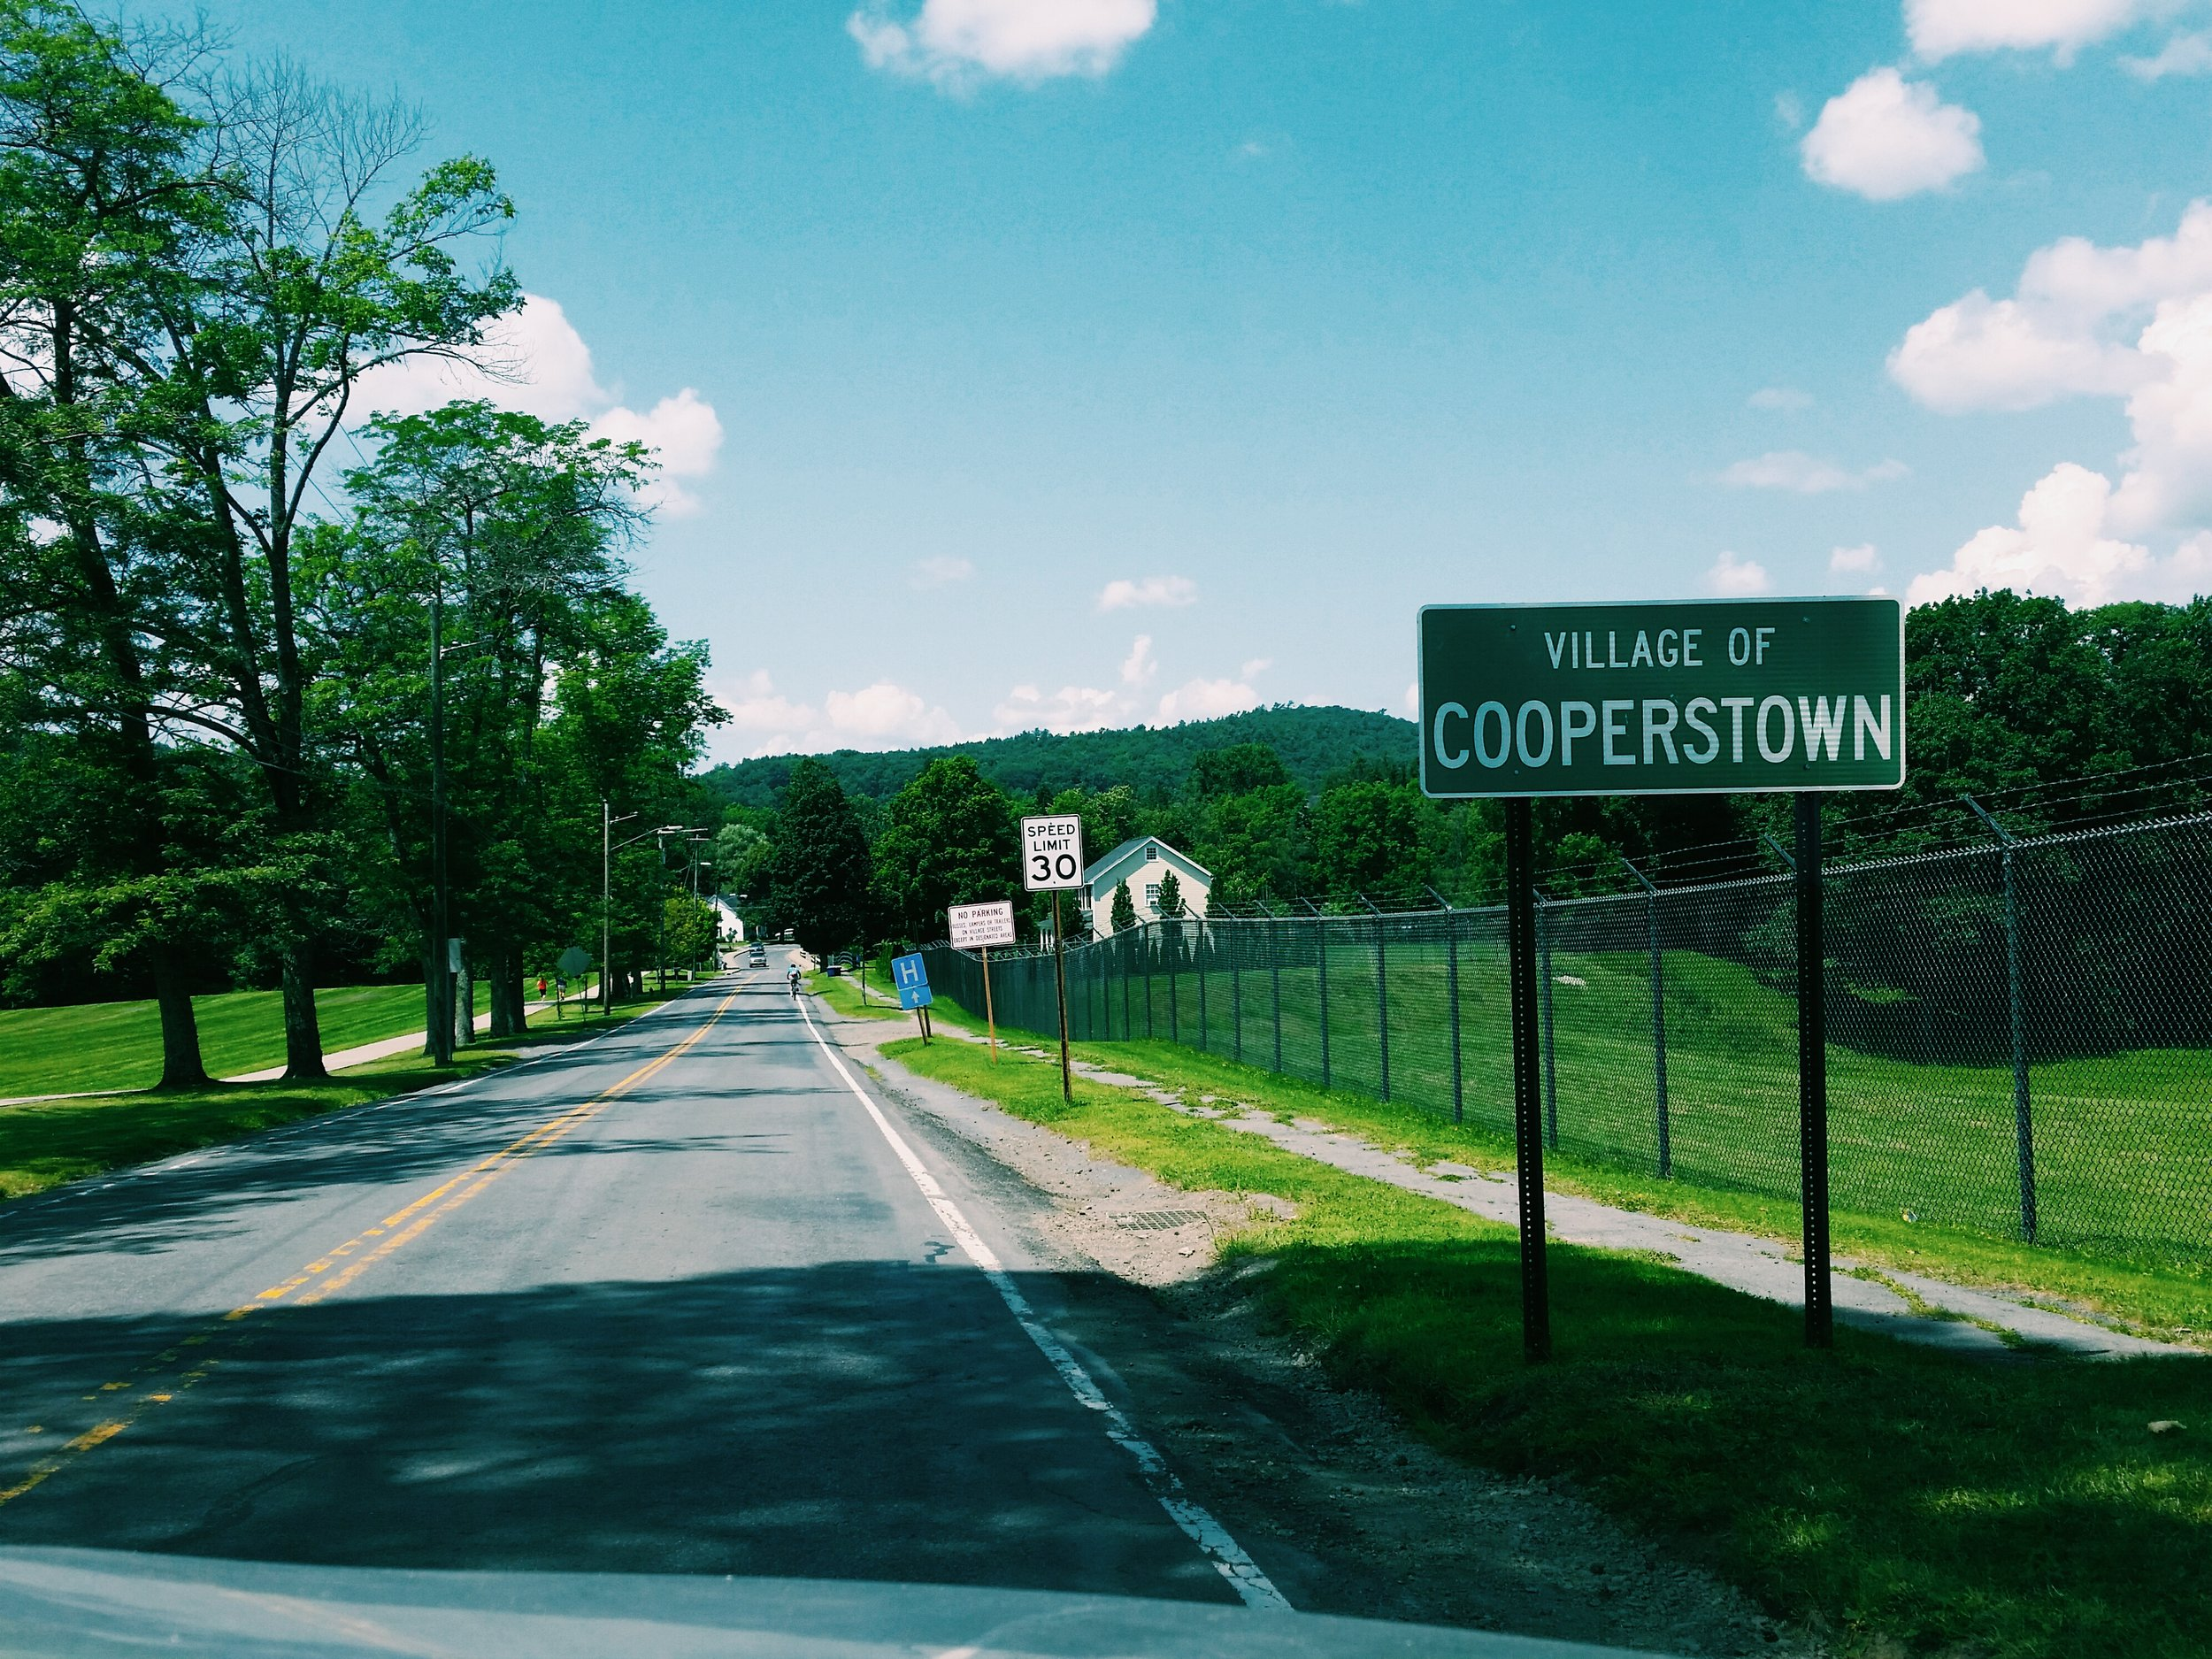 Mobile photo - Entering Cooperstown